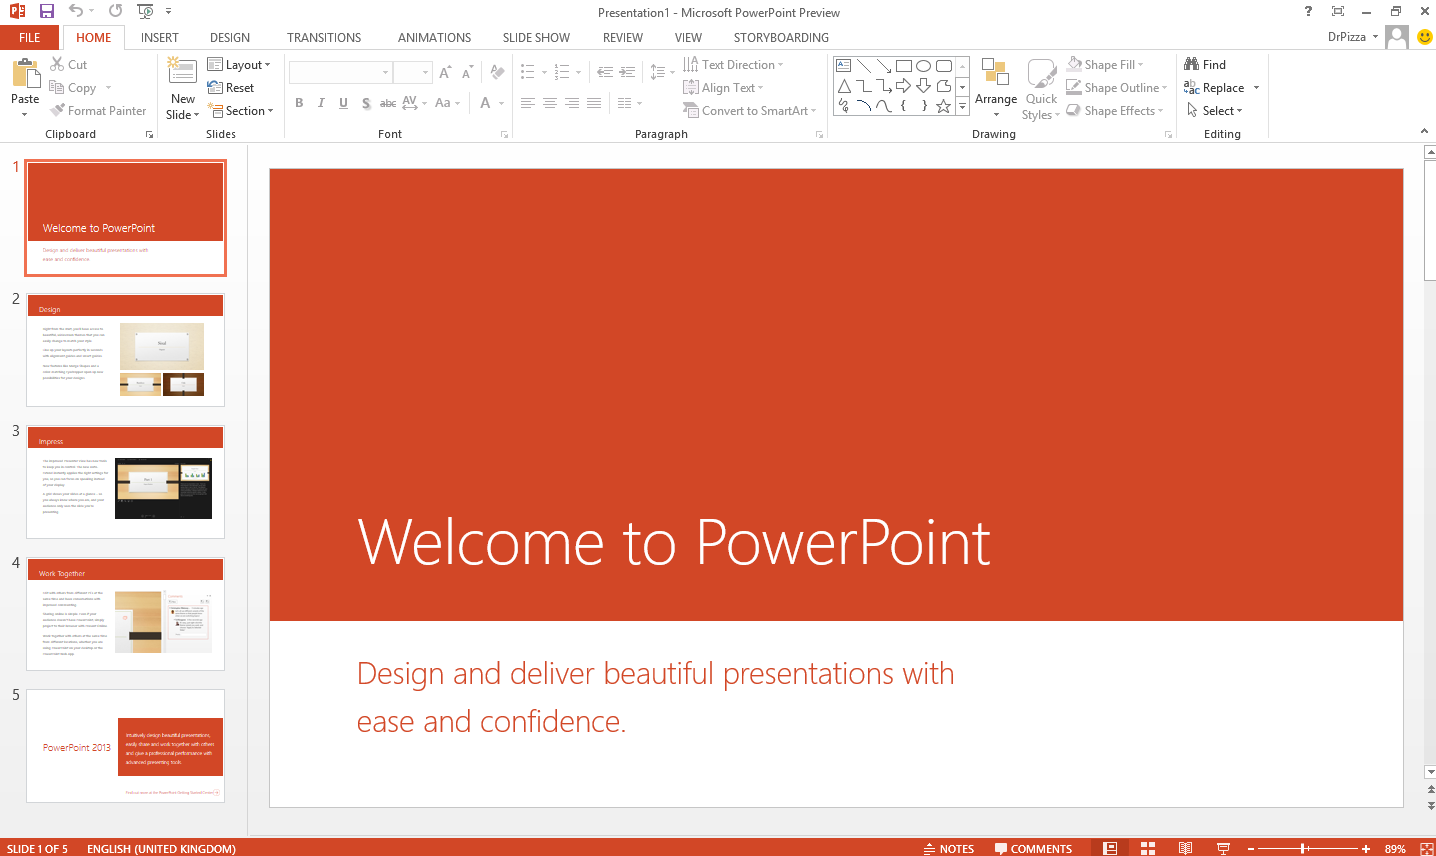 Powerpoint mp4 how to insert mp4 into powerpoint?